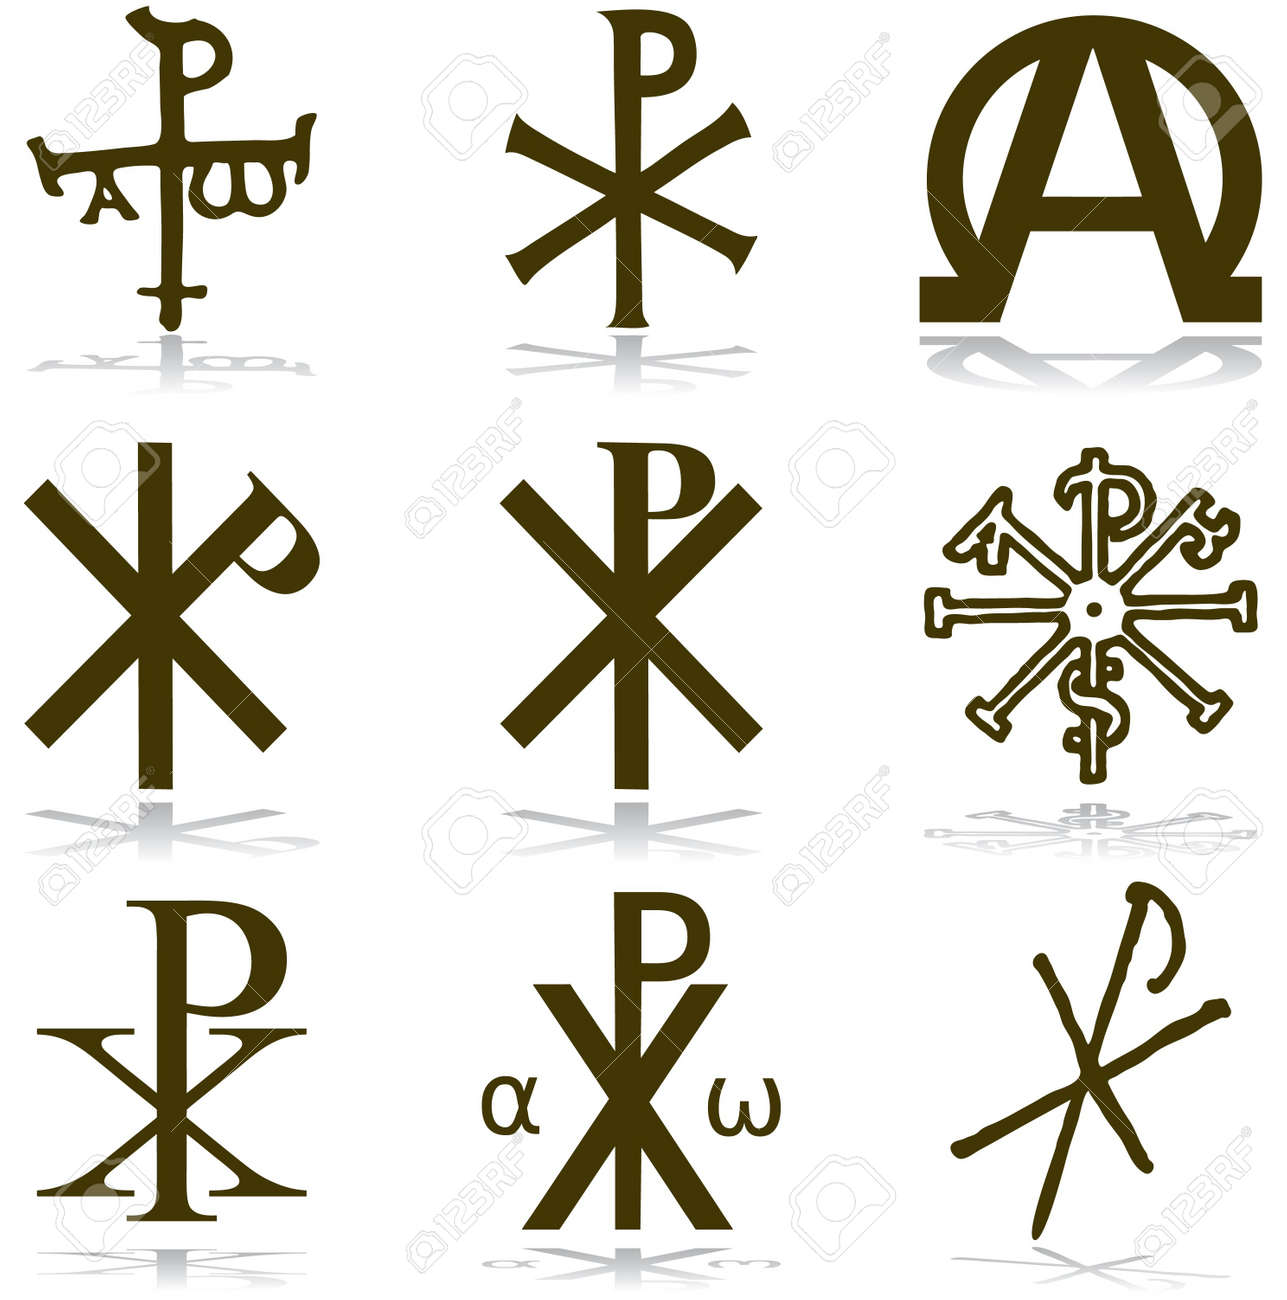 Catholic Church Symbols And Their Meanings Lektonfo